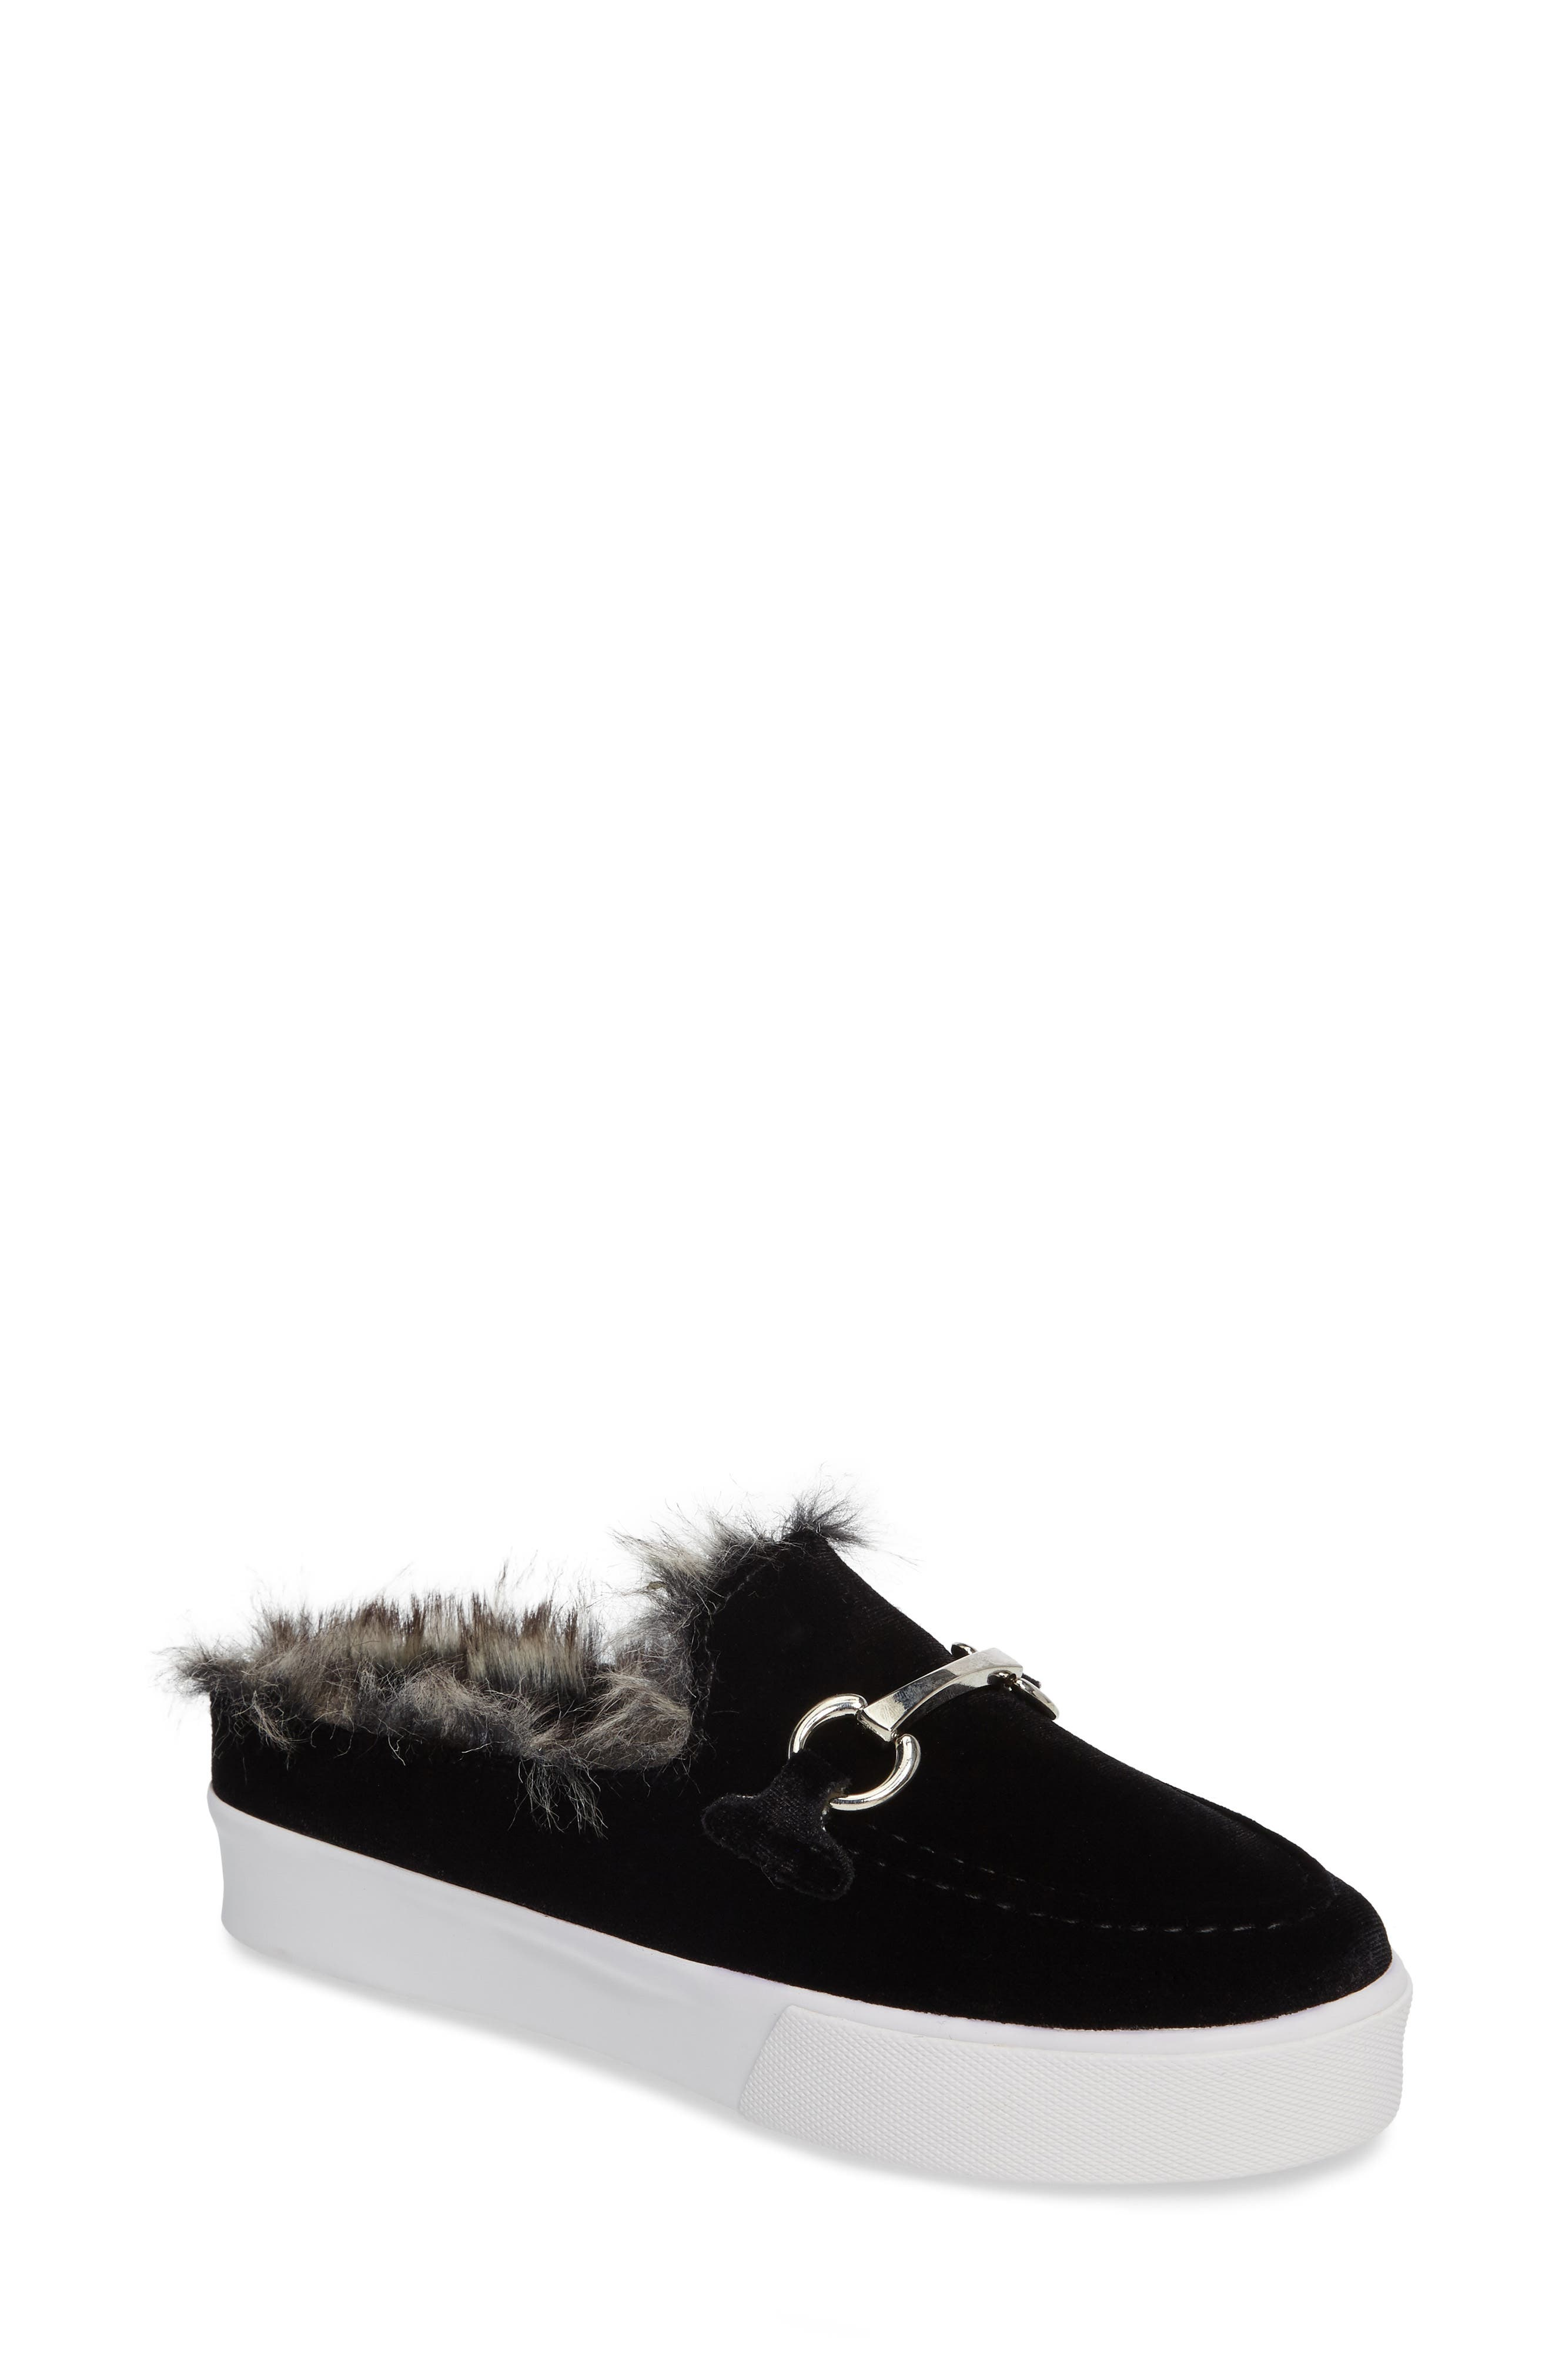 Tico Faux Fur Sneaker Mule,                             Main thumbnail 1, color,                             003